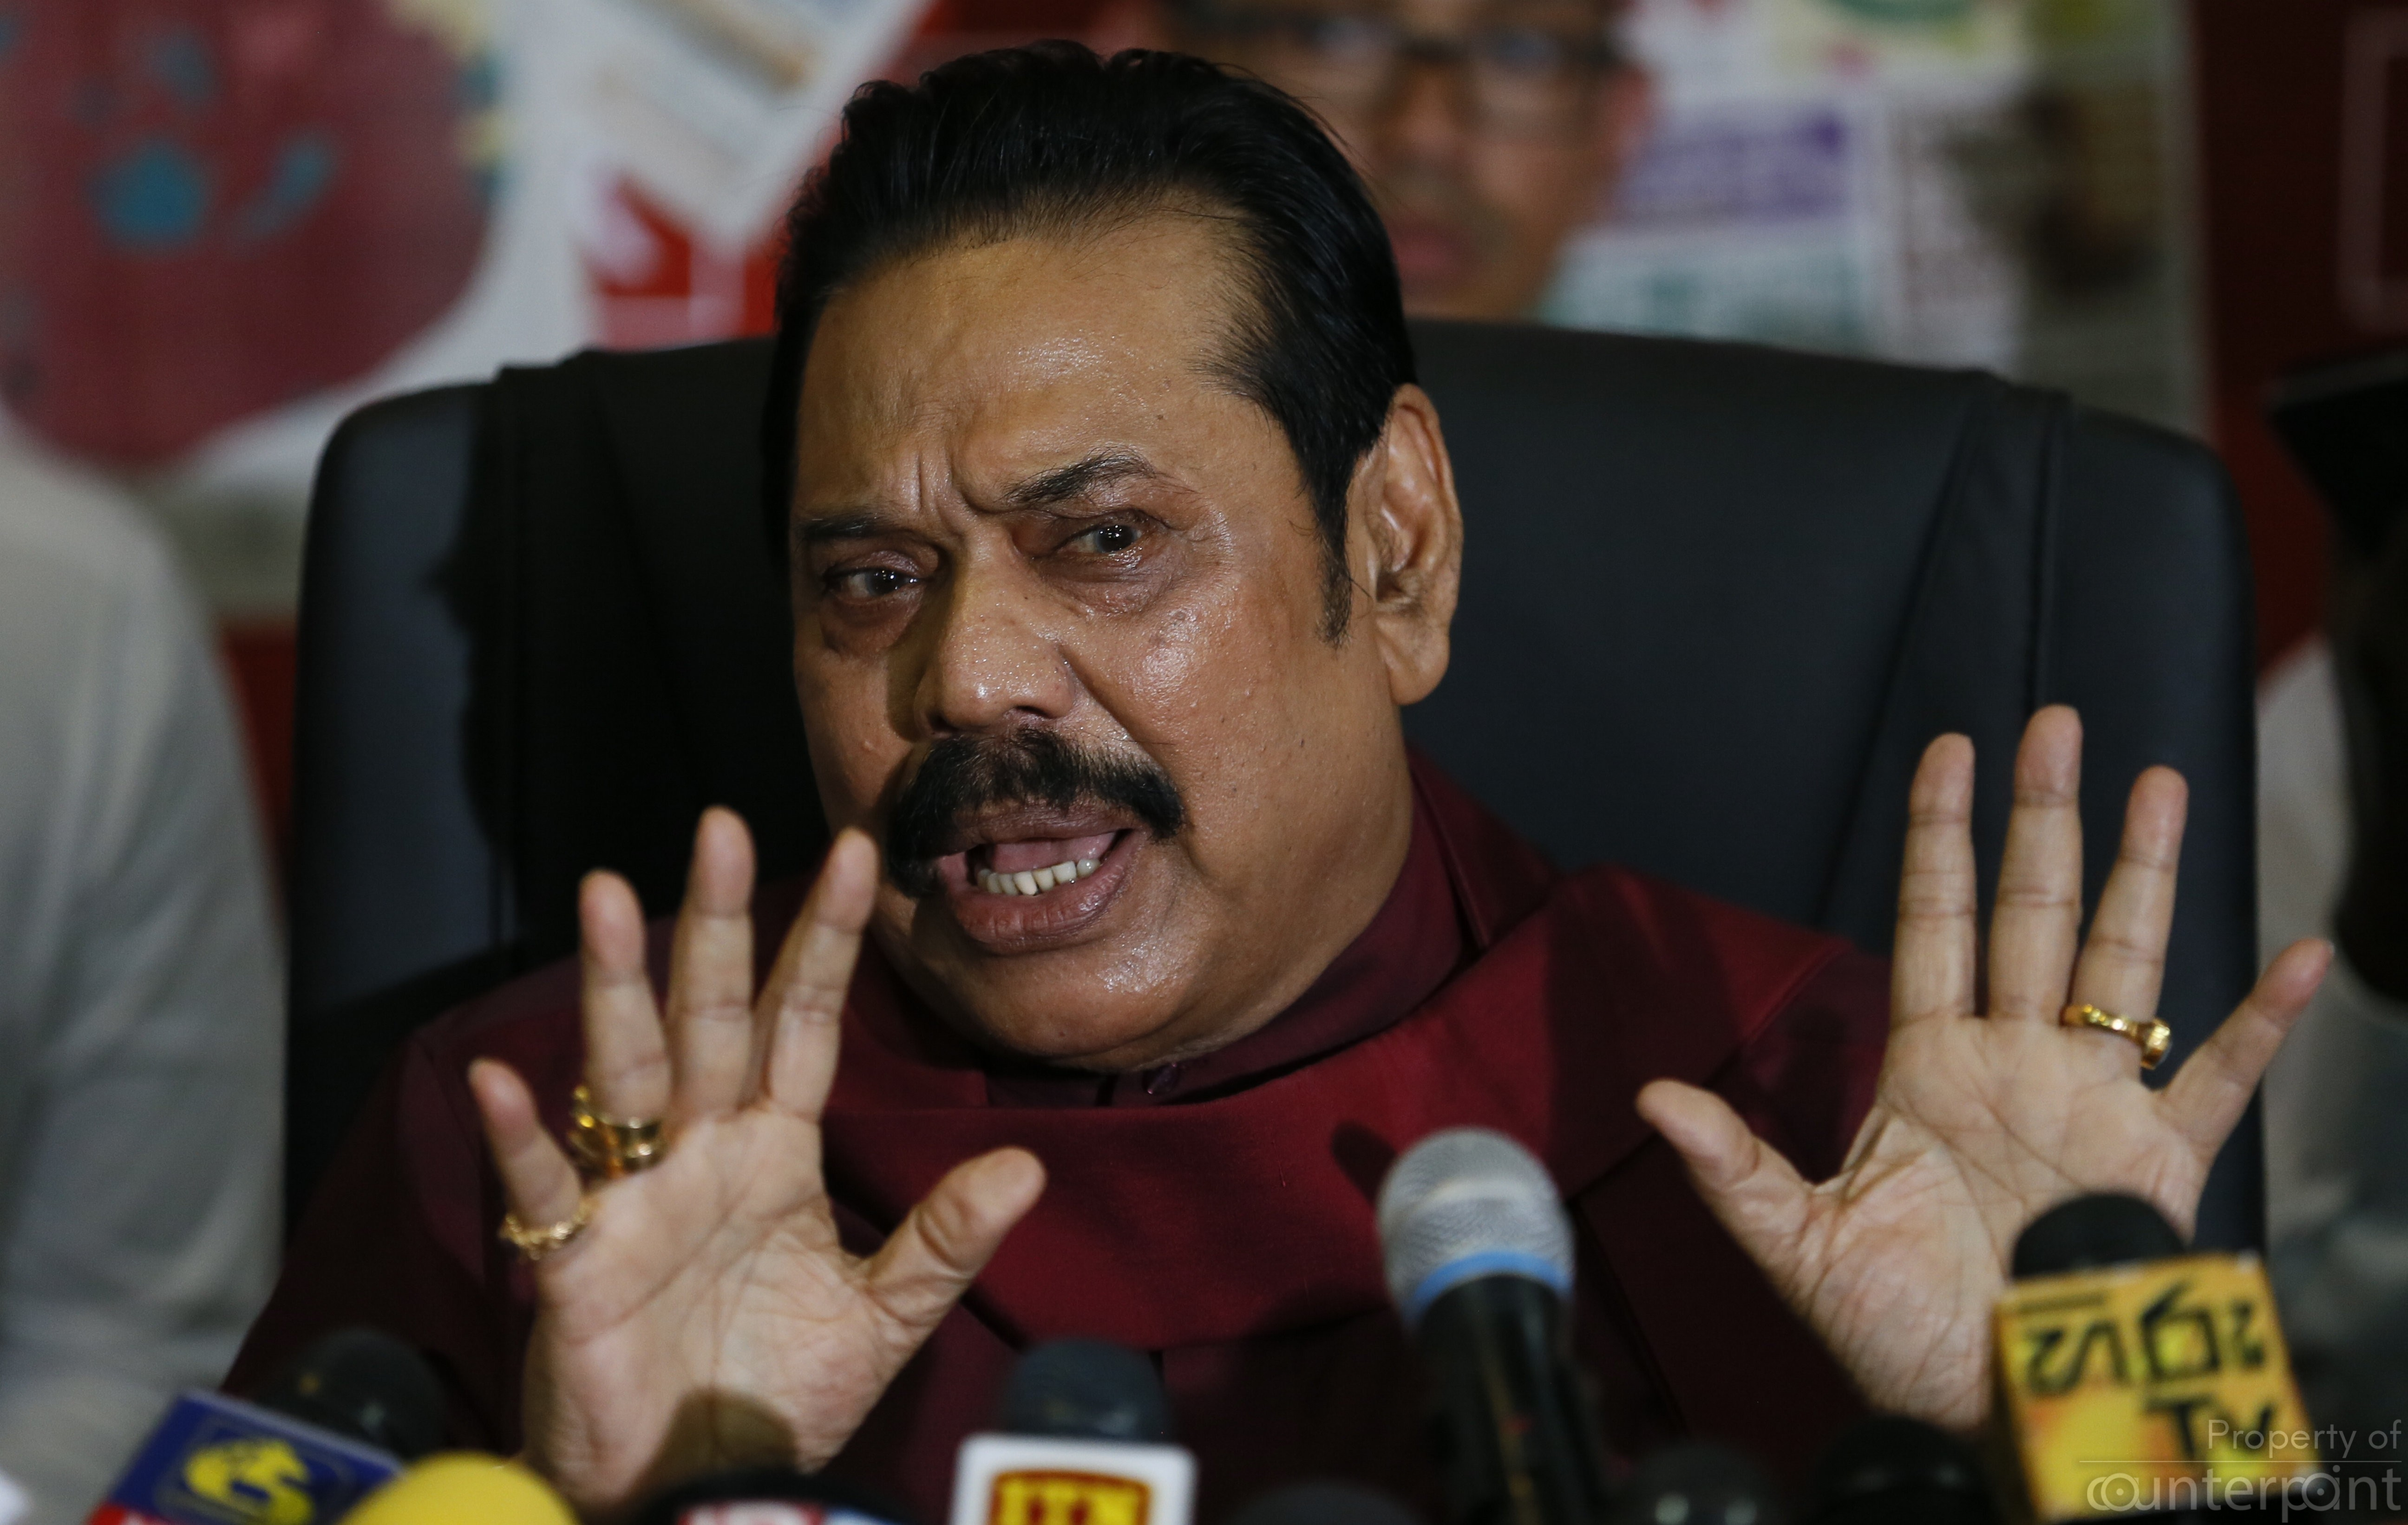 Despite being the most popular politician in the country, Mahinda Rajapaksa cannot be President again, following the 19th Amendment.